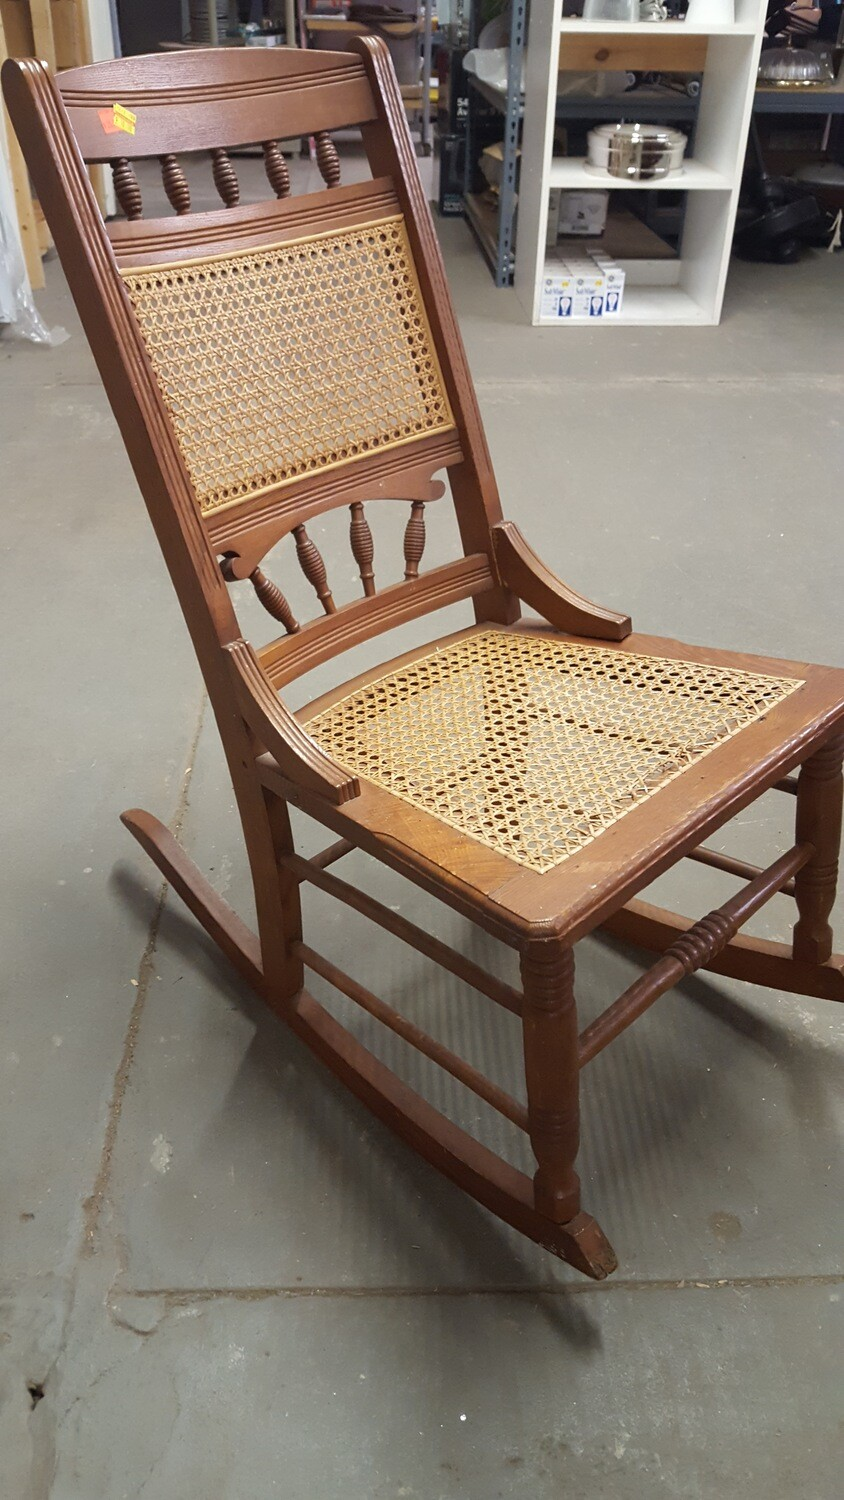 Antique Rocker, caned seat (CL)